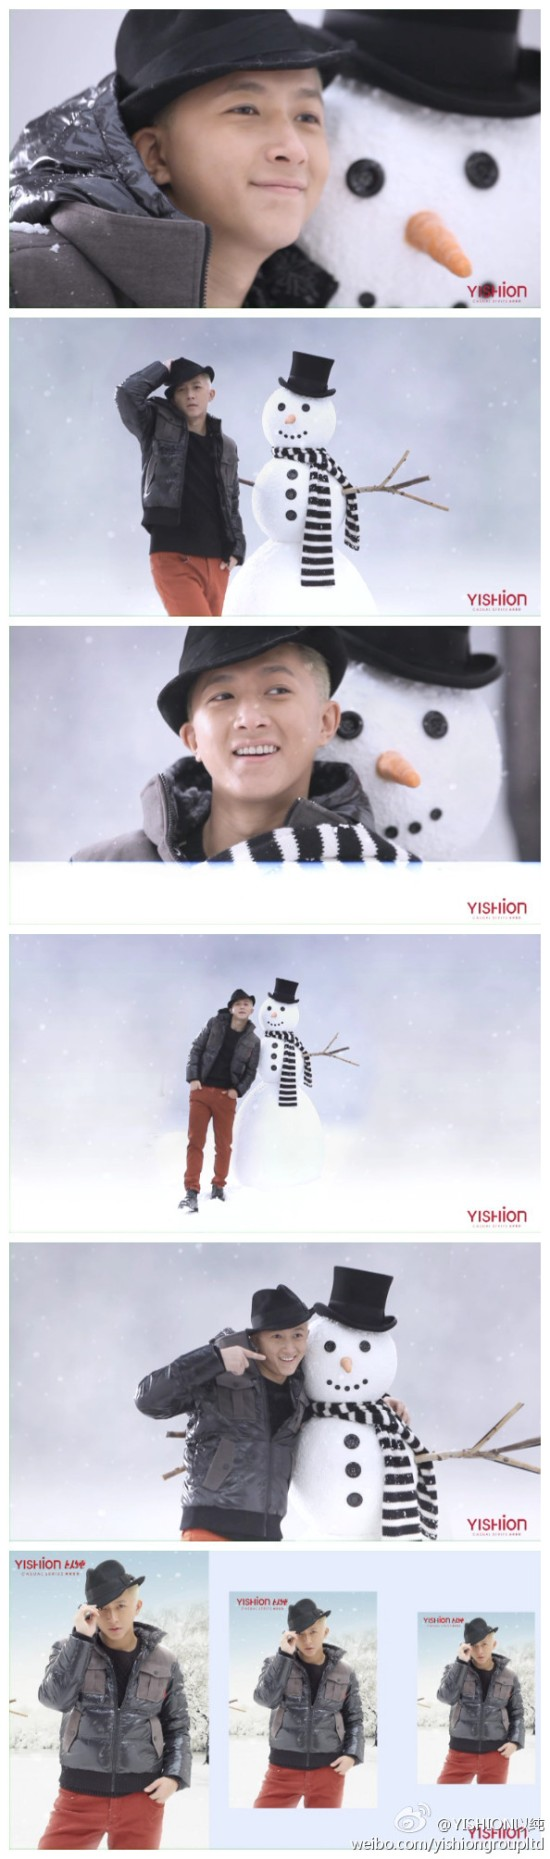 YiShion Hangeng 7